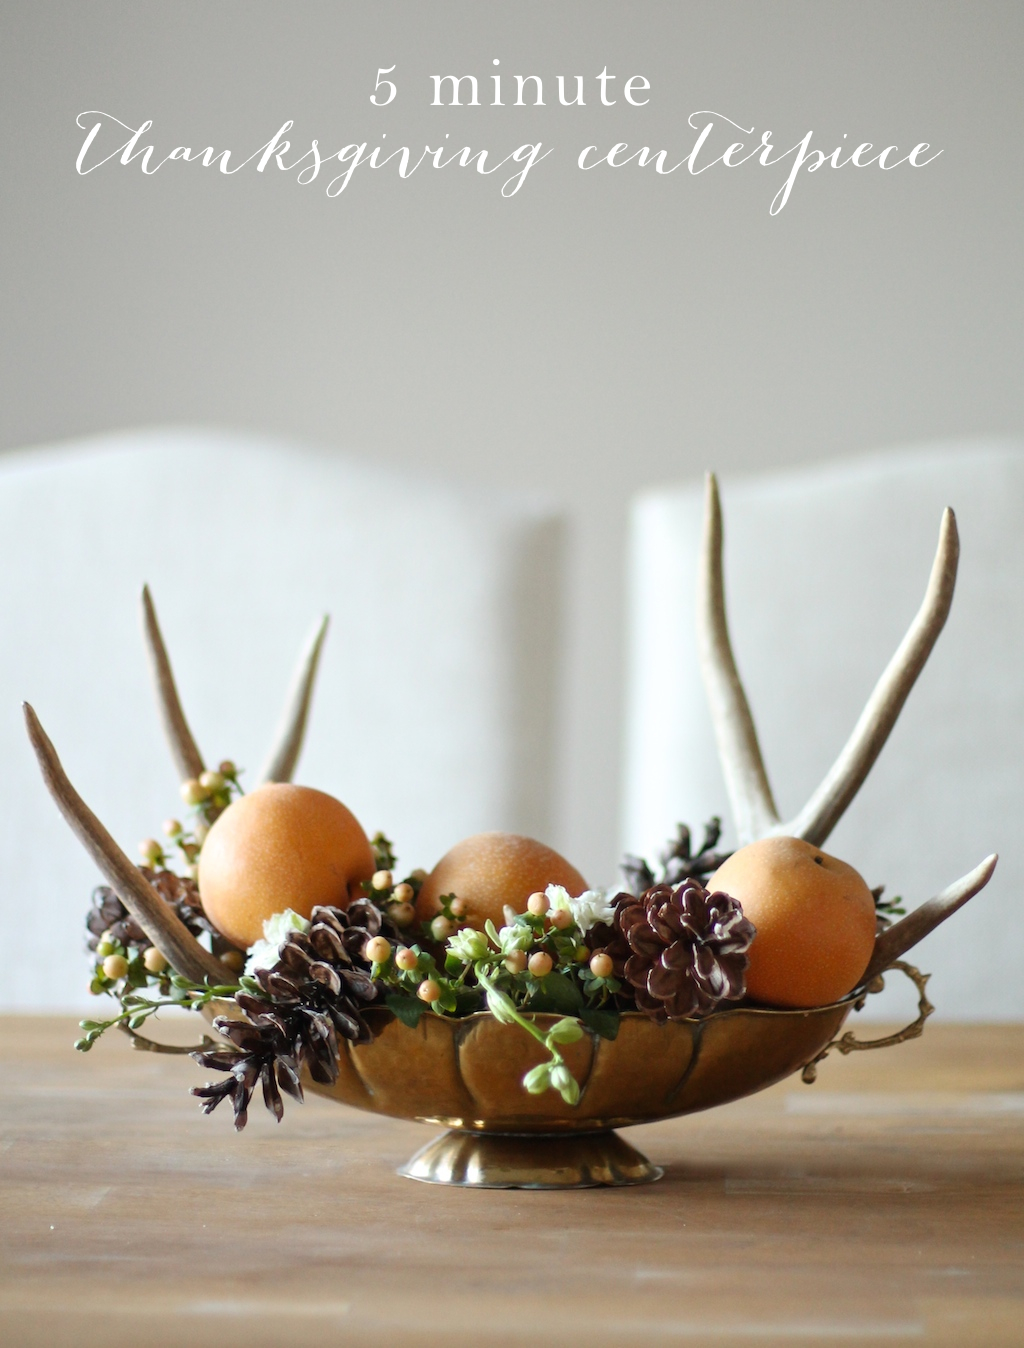 Last minute thanksgiving centerpieces for your holiday